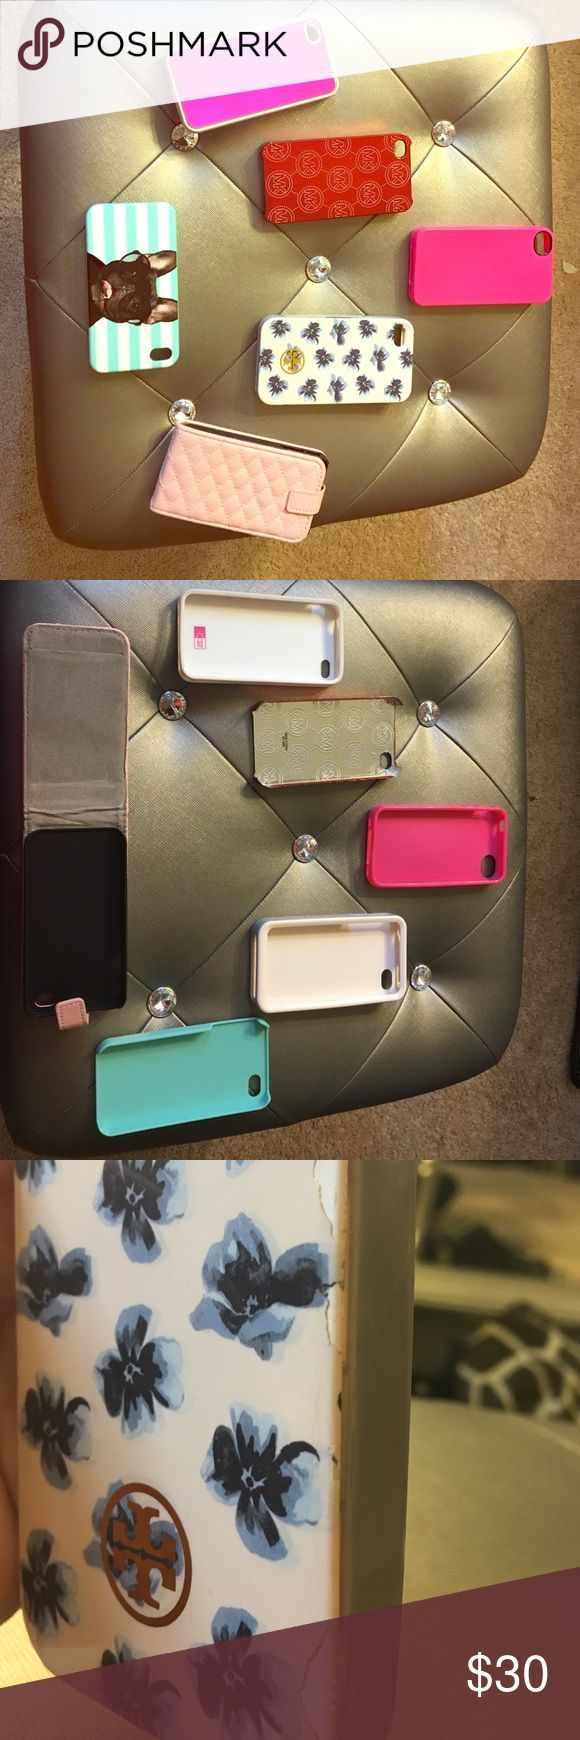 Name Brand iPhone 4s Phone Cases Name Brand iPhone 4s Cases. I am selling each of them for $8.00 a case but if you want to bundle them & buy them all, I will give u a GREAT discount 👍. The Tory Burch Case, is the only one with minor scuffs (shown in pic). Michael Kors, Tory Burch, 3 Pink Cases & 1 French Bulldog Case Accessories Phone Cases